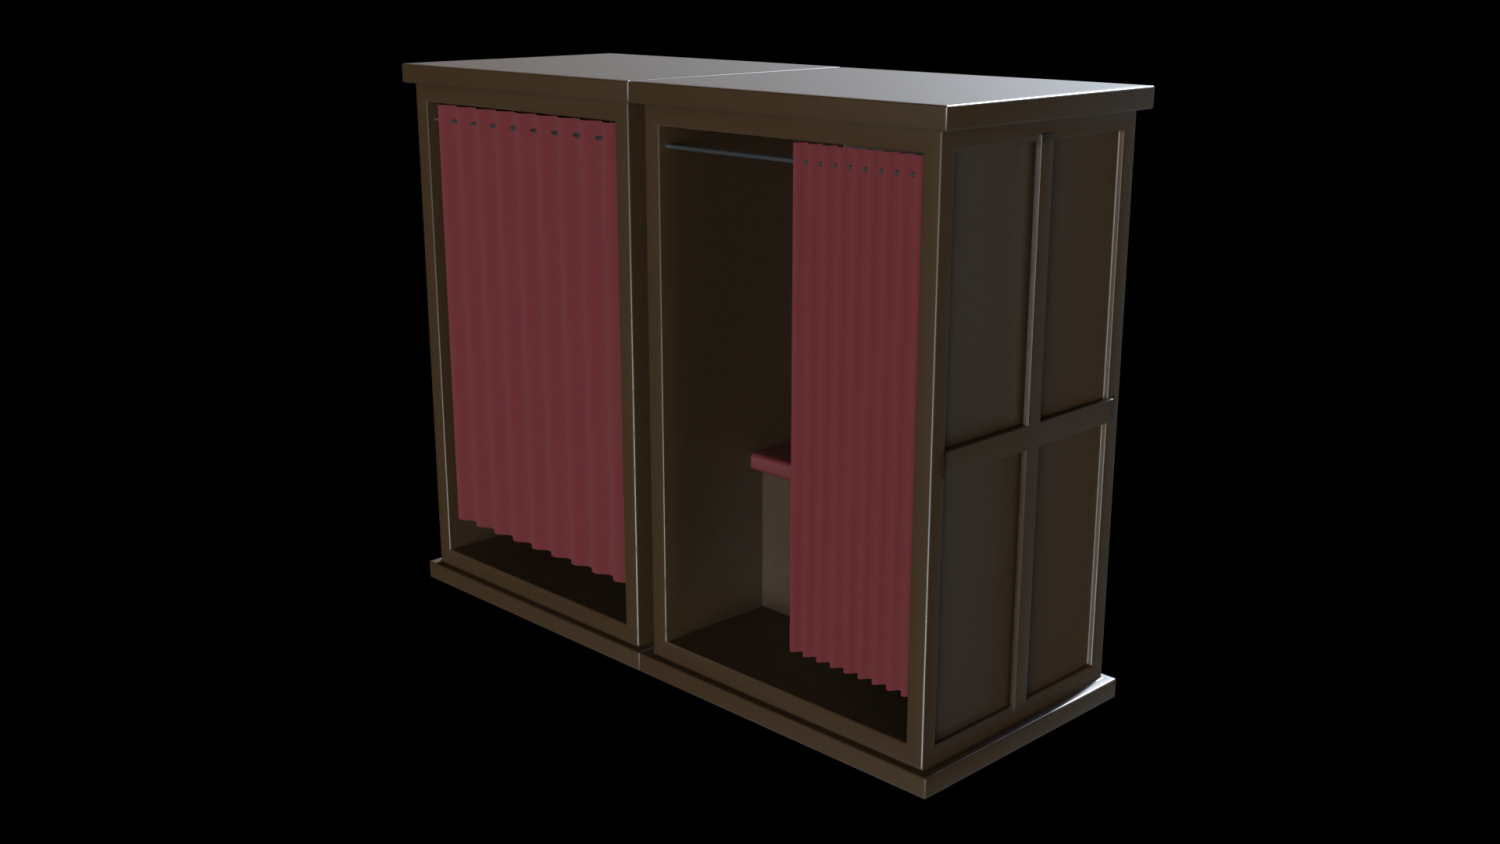 Church Confession Box V2 3d Model In Other 3dexport